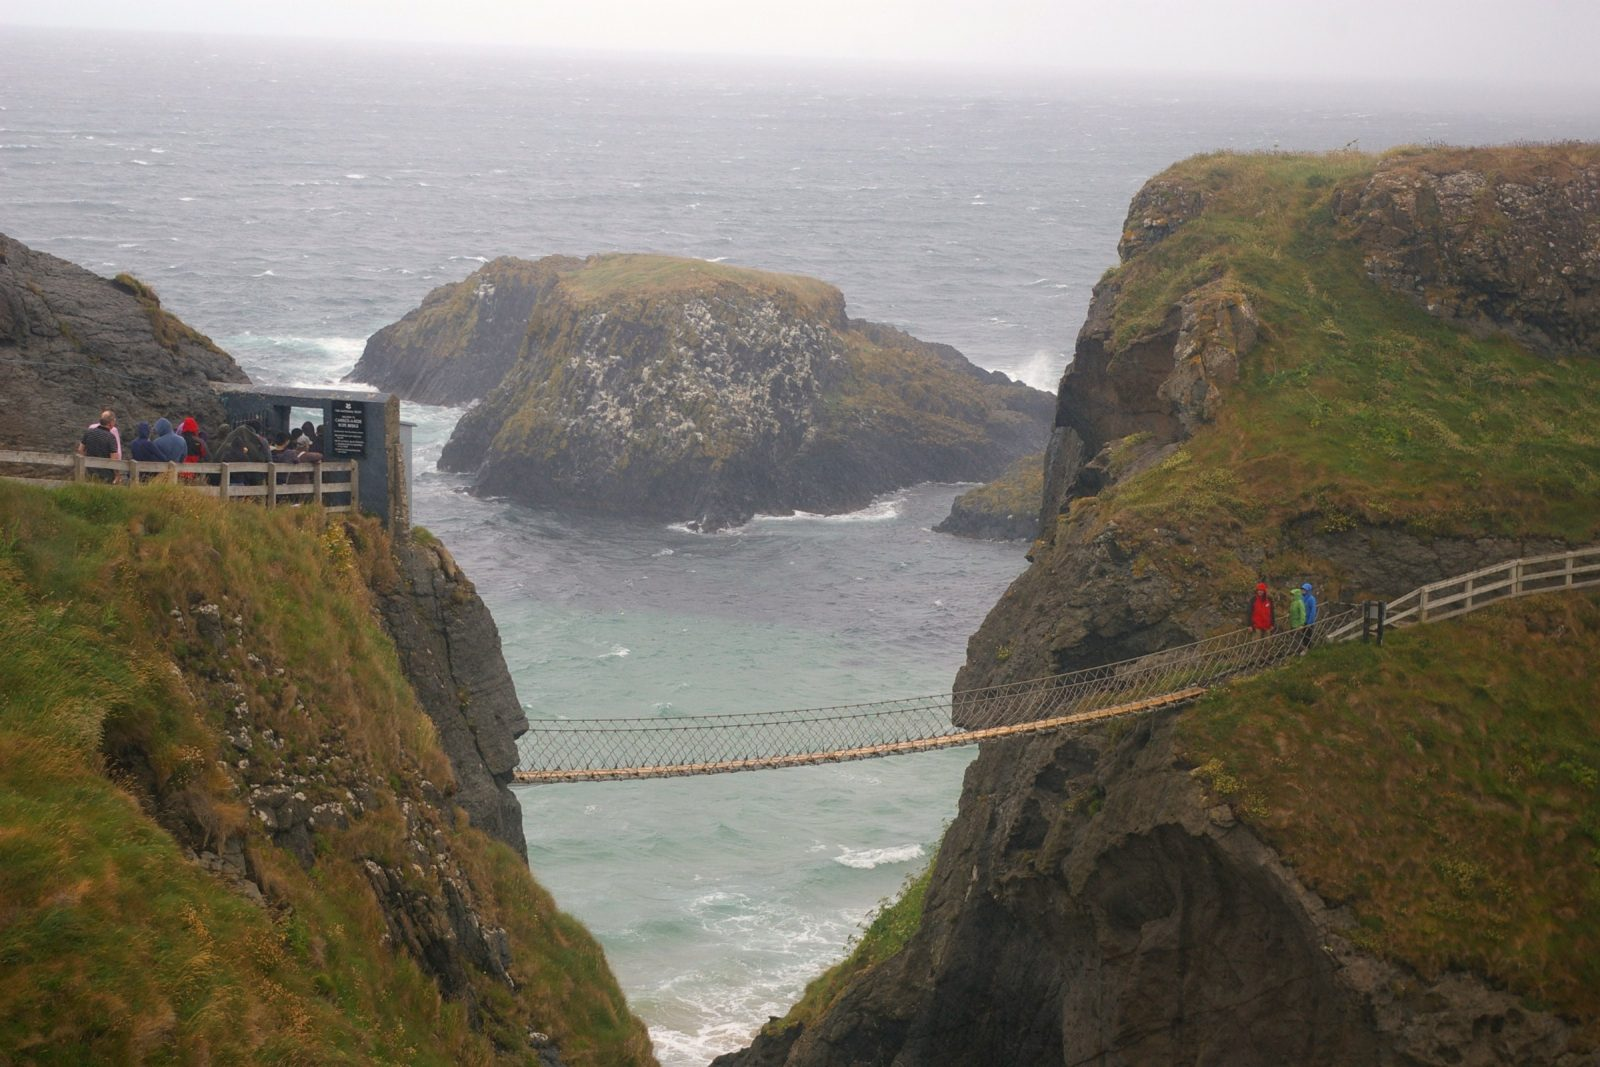 Carrick-a-Rede Ropebridge Causeway Coastal Route